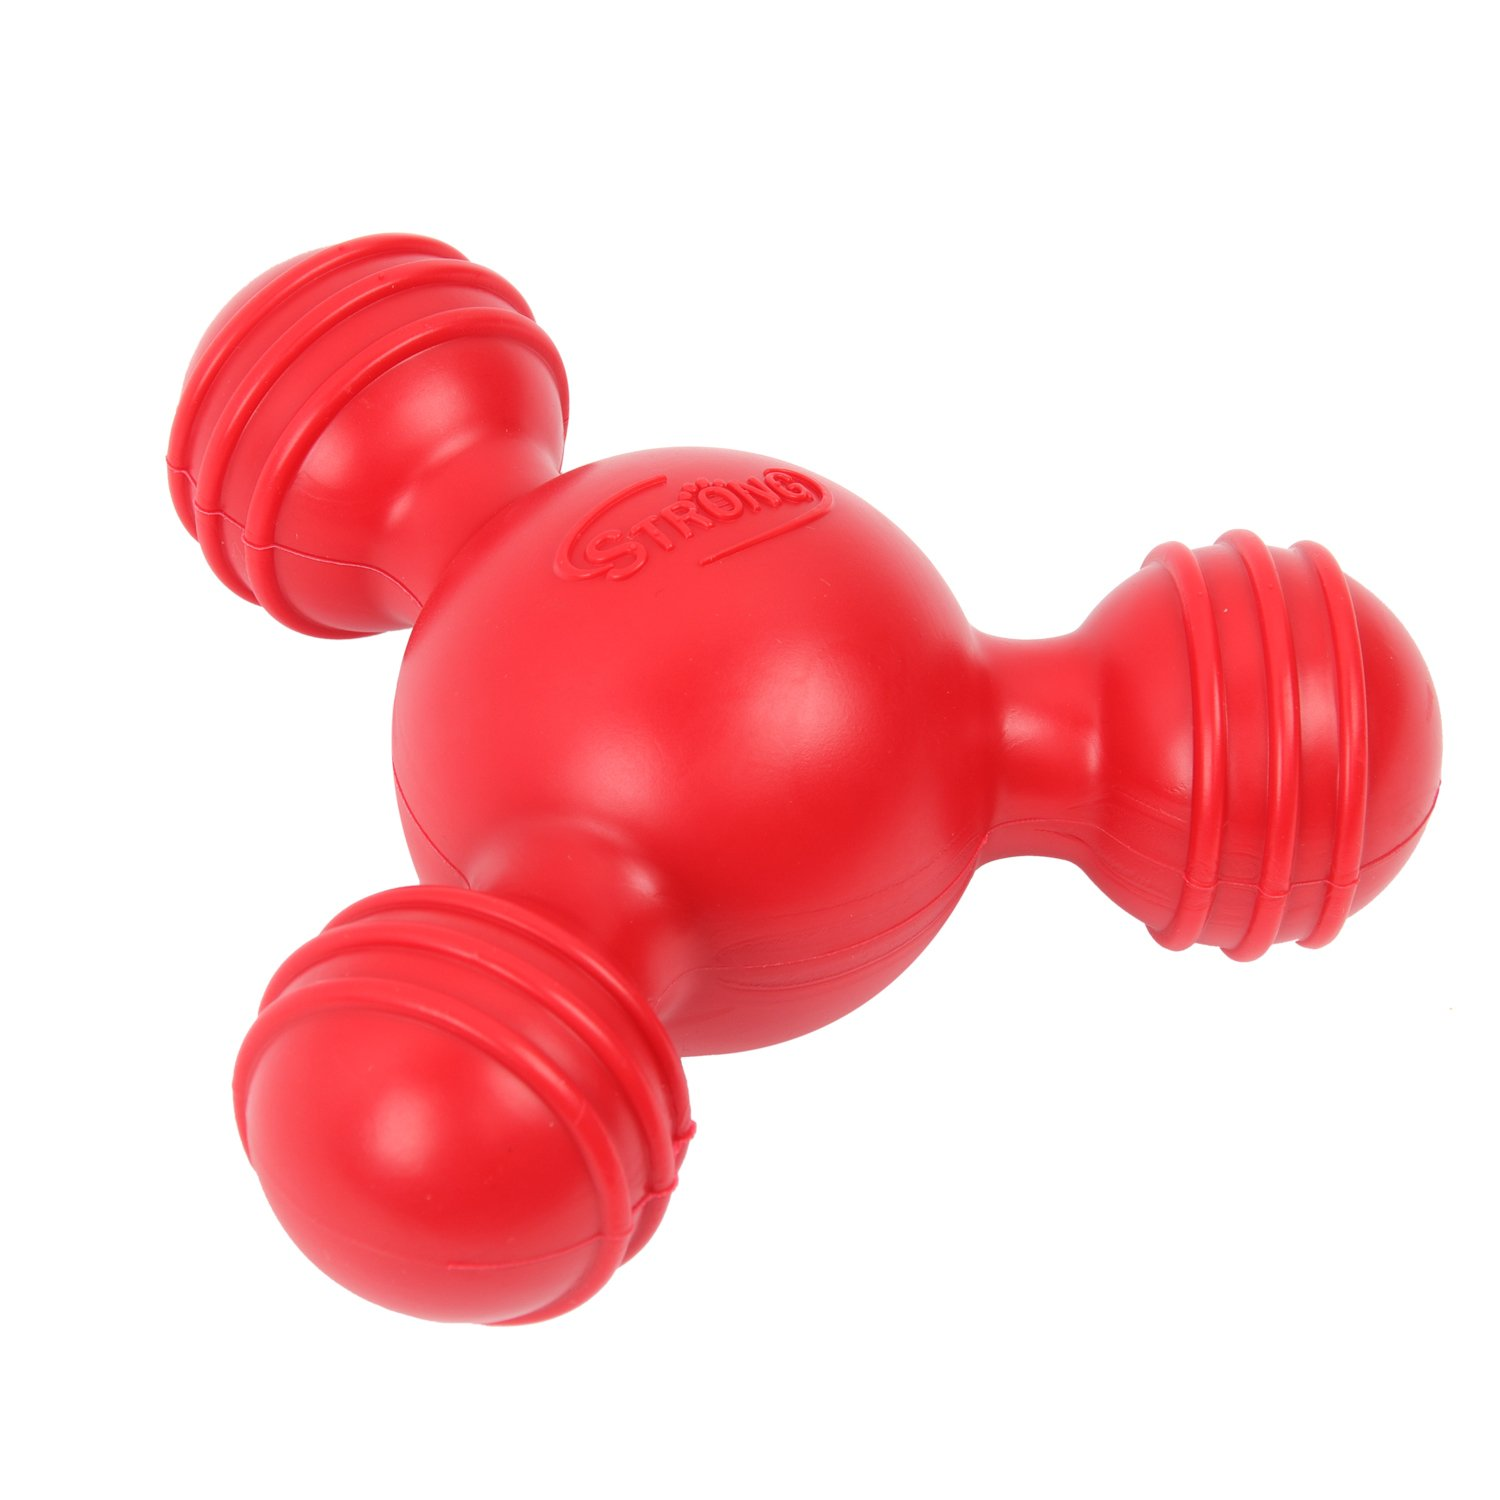 HBuir Durable Rubber Tri-Ball Floating Toy for Dog Training or Fun Plaything